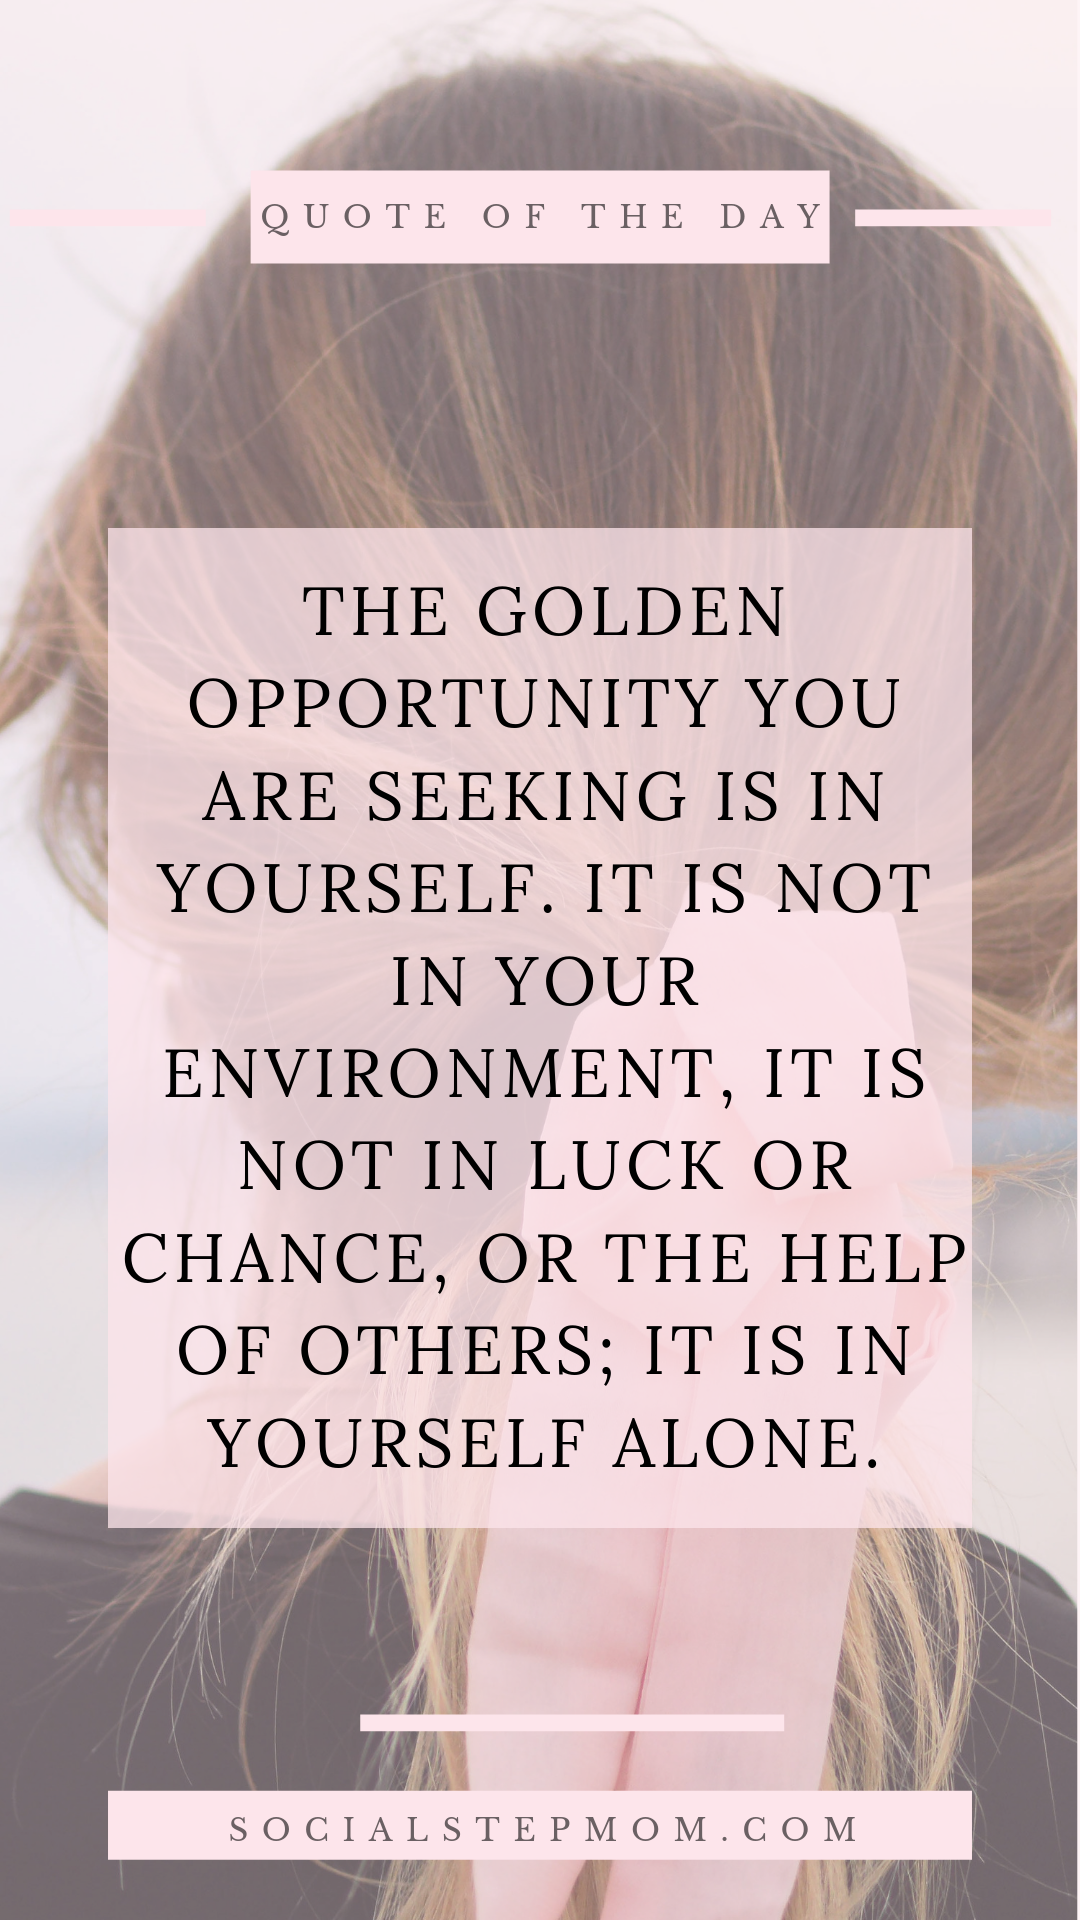 The golden opportunity you are seeking is in yourself. in ...